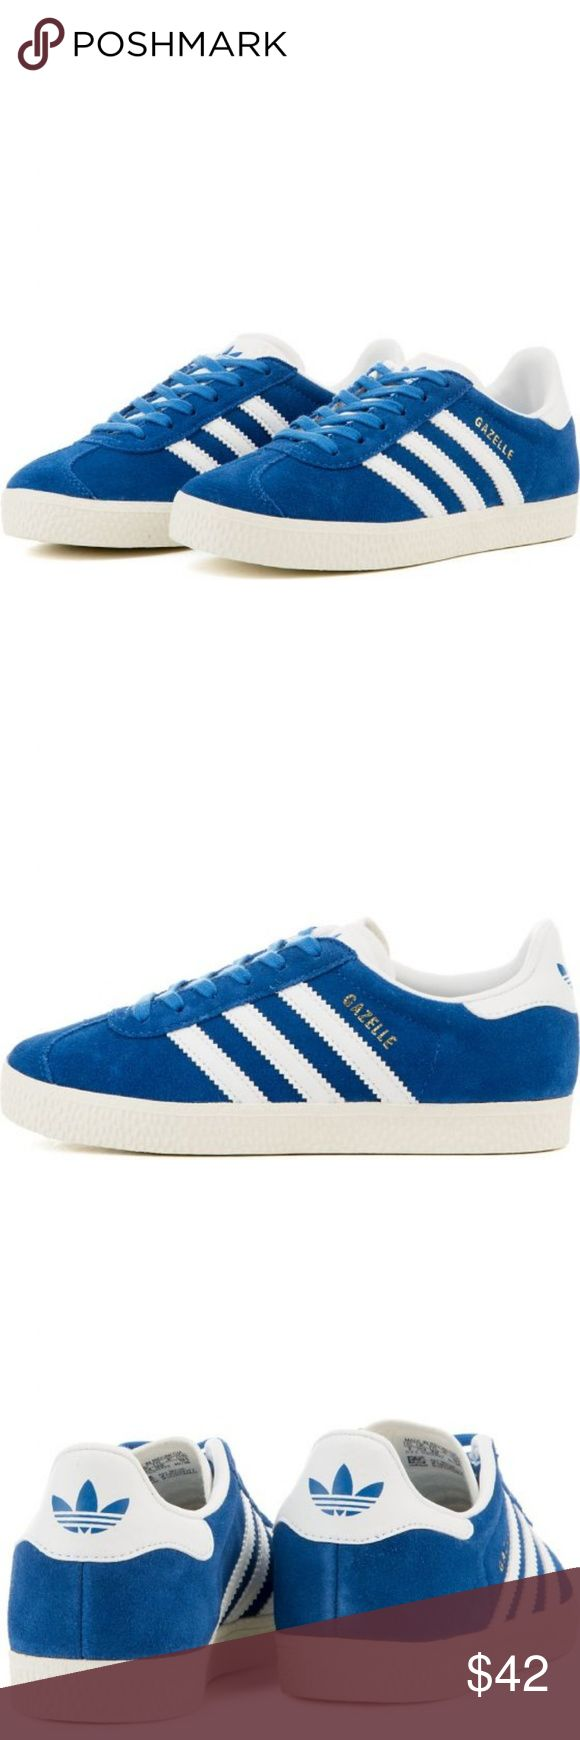 NIB Authentic Adidas Gazelle